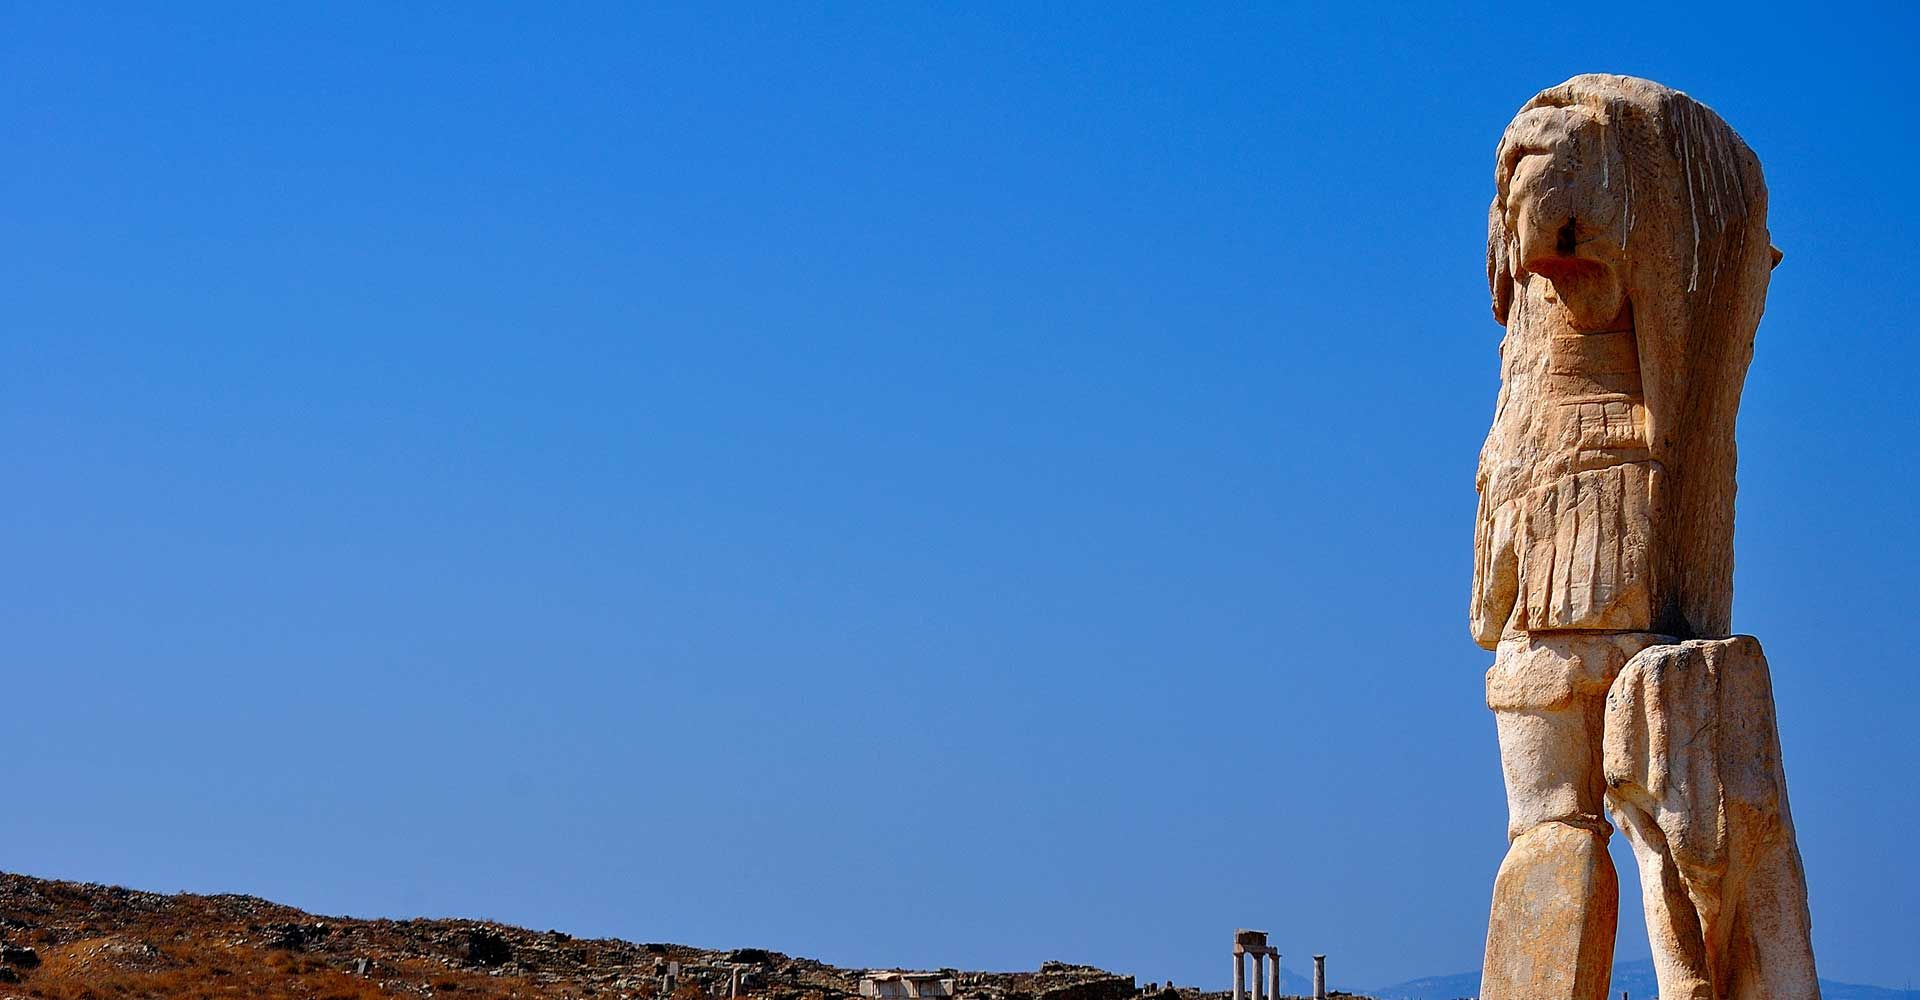 Combo Cruise to Rhenia & Guided Tour of Delos